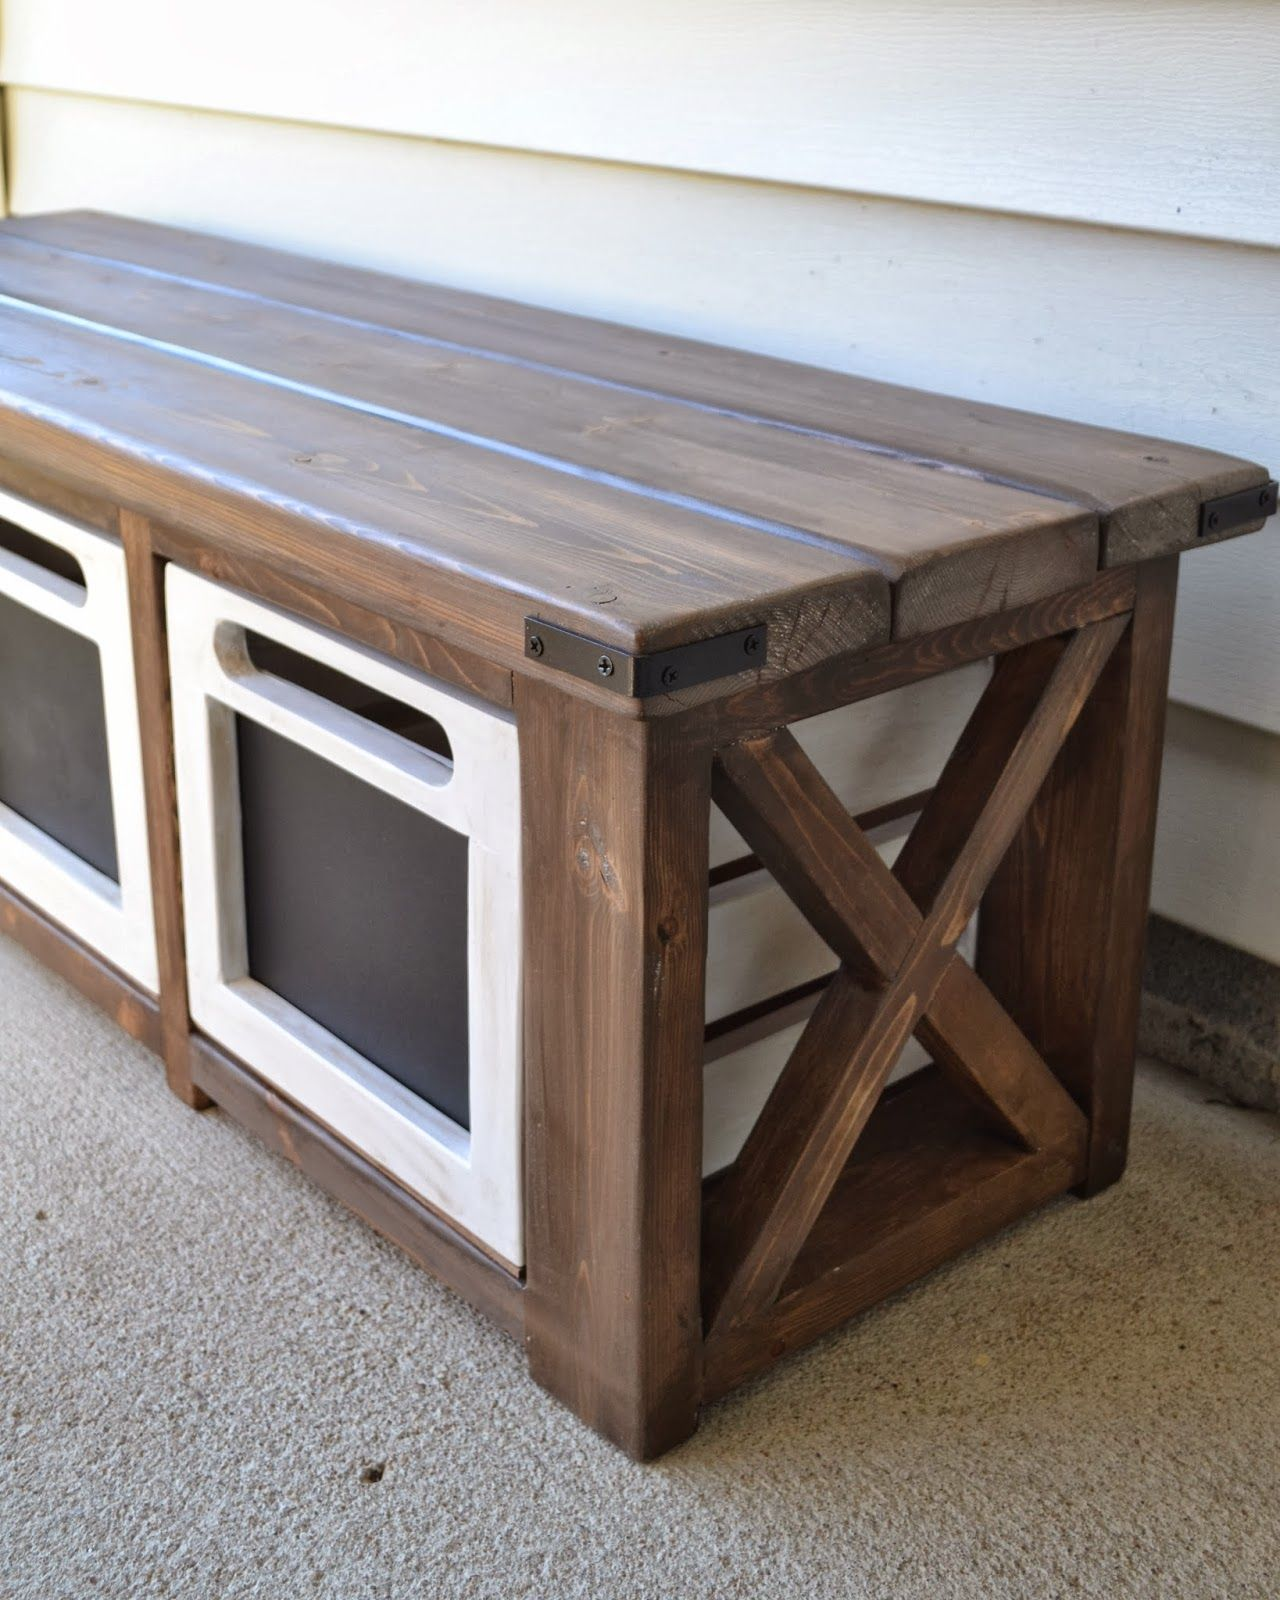 bench crates crate by diy karony tv pin sara apartment wooden on or pinterest table